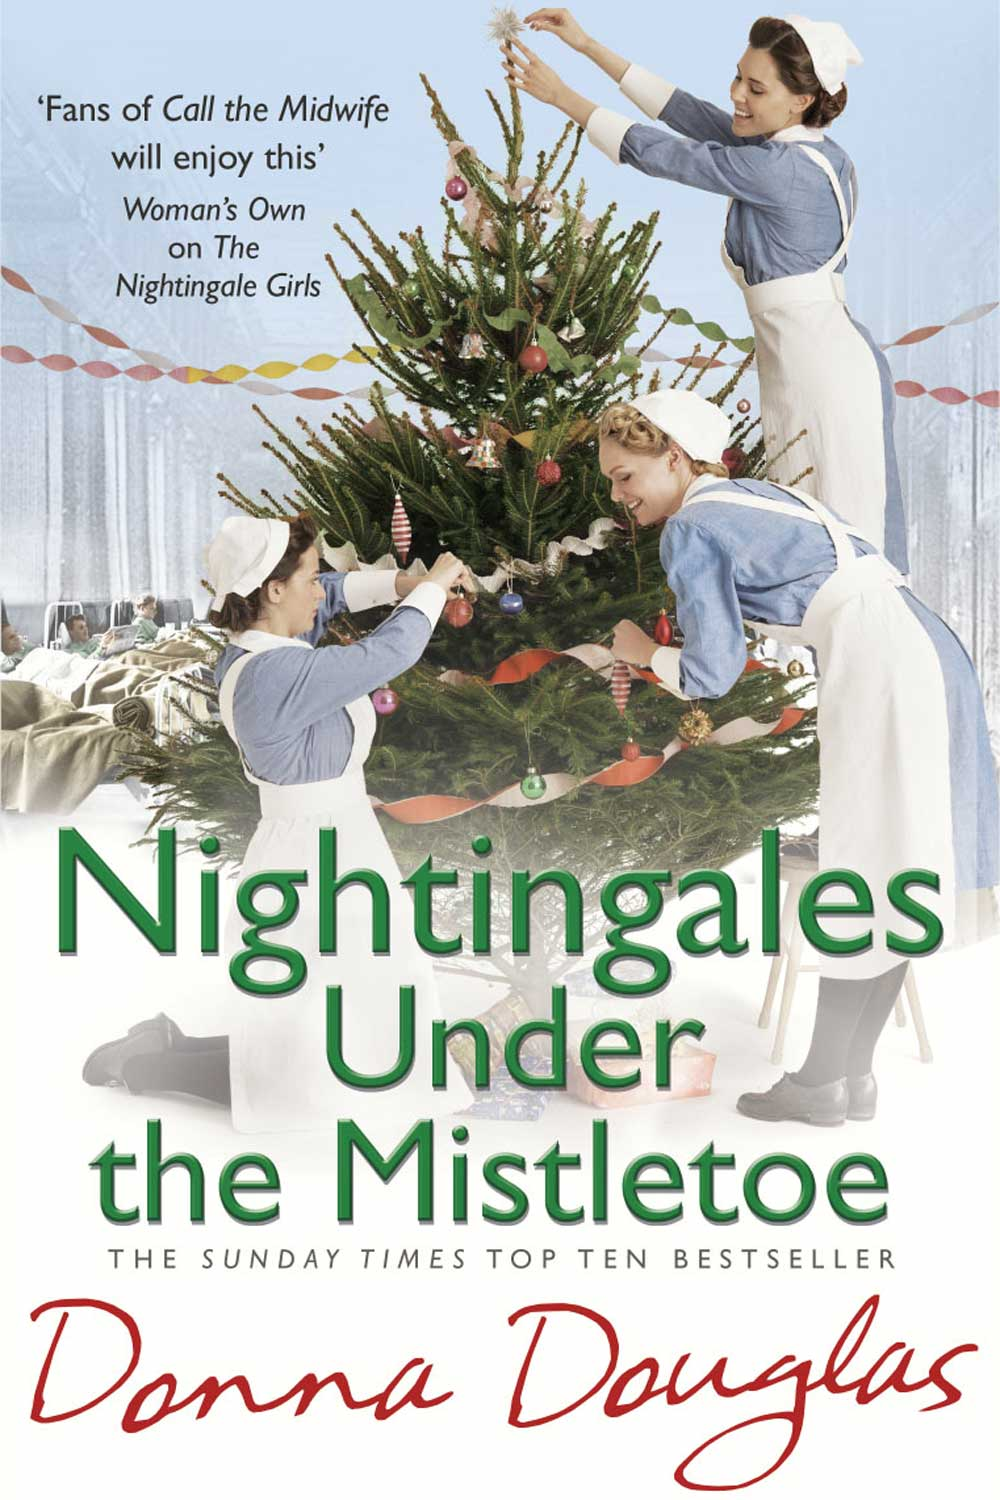 Nightingales-Under-The-Mistletoe-Donna-Douglas